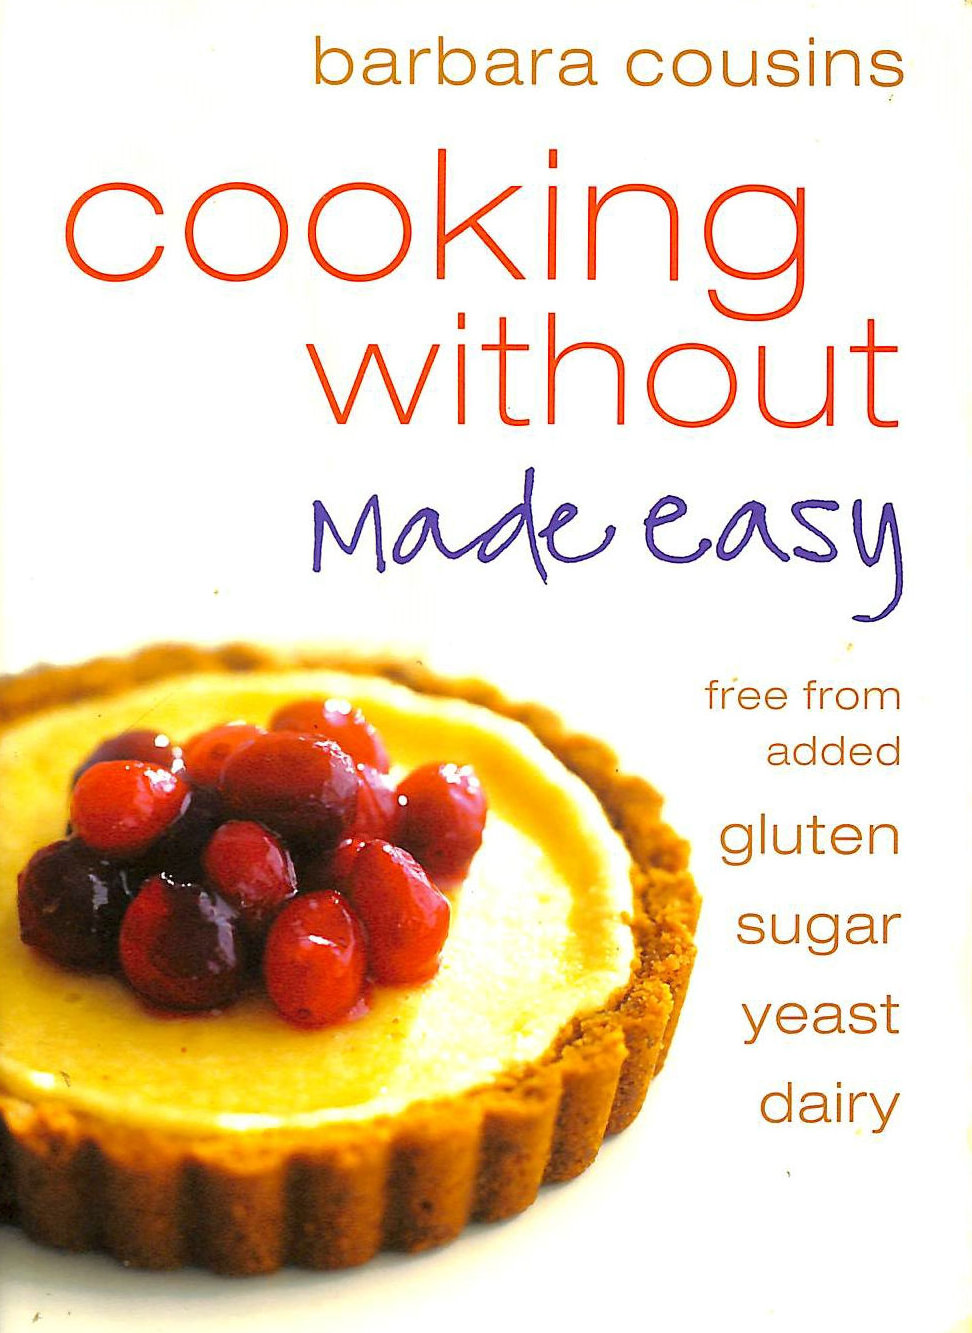 Image for Cooking Without Made Easy: All recipes free from added gluten, sugar, yeast and dairy produce